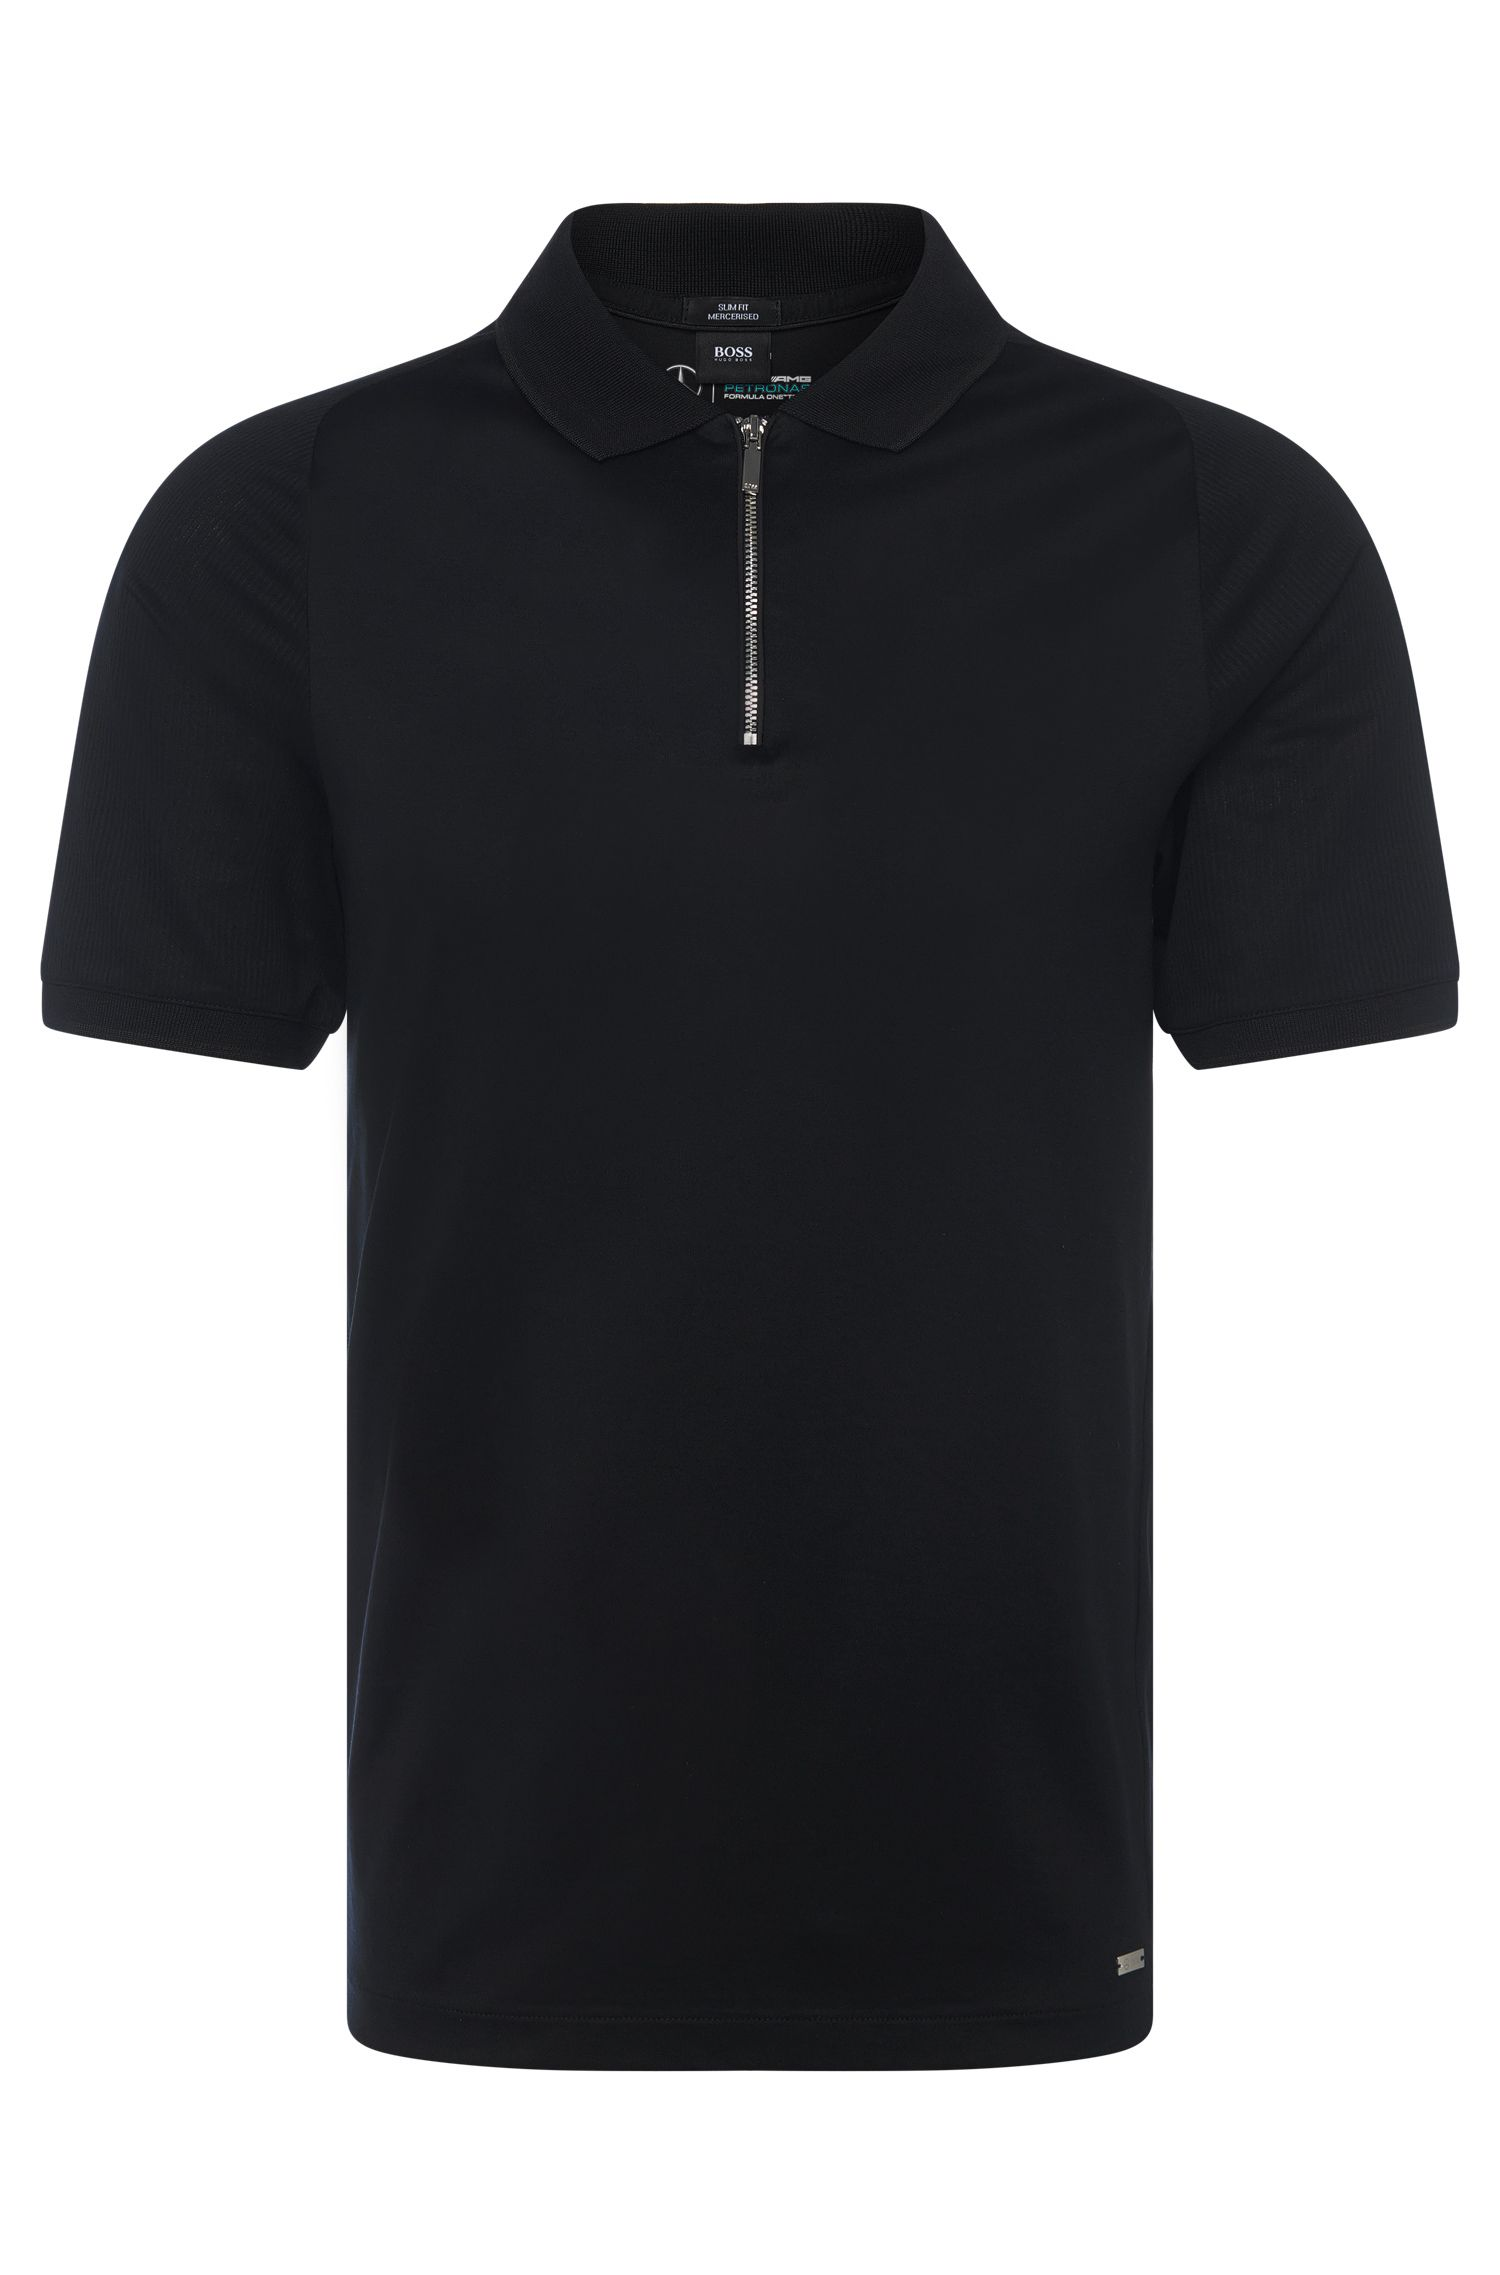 Slim-fit polo shirt in cotton: 'Polston 03' from the Mercedes-Benz Collection